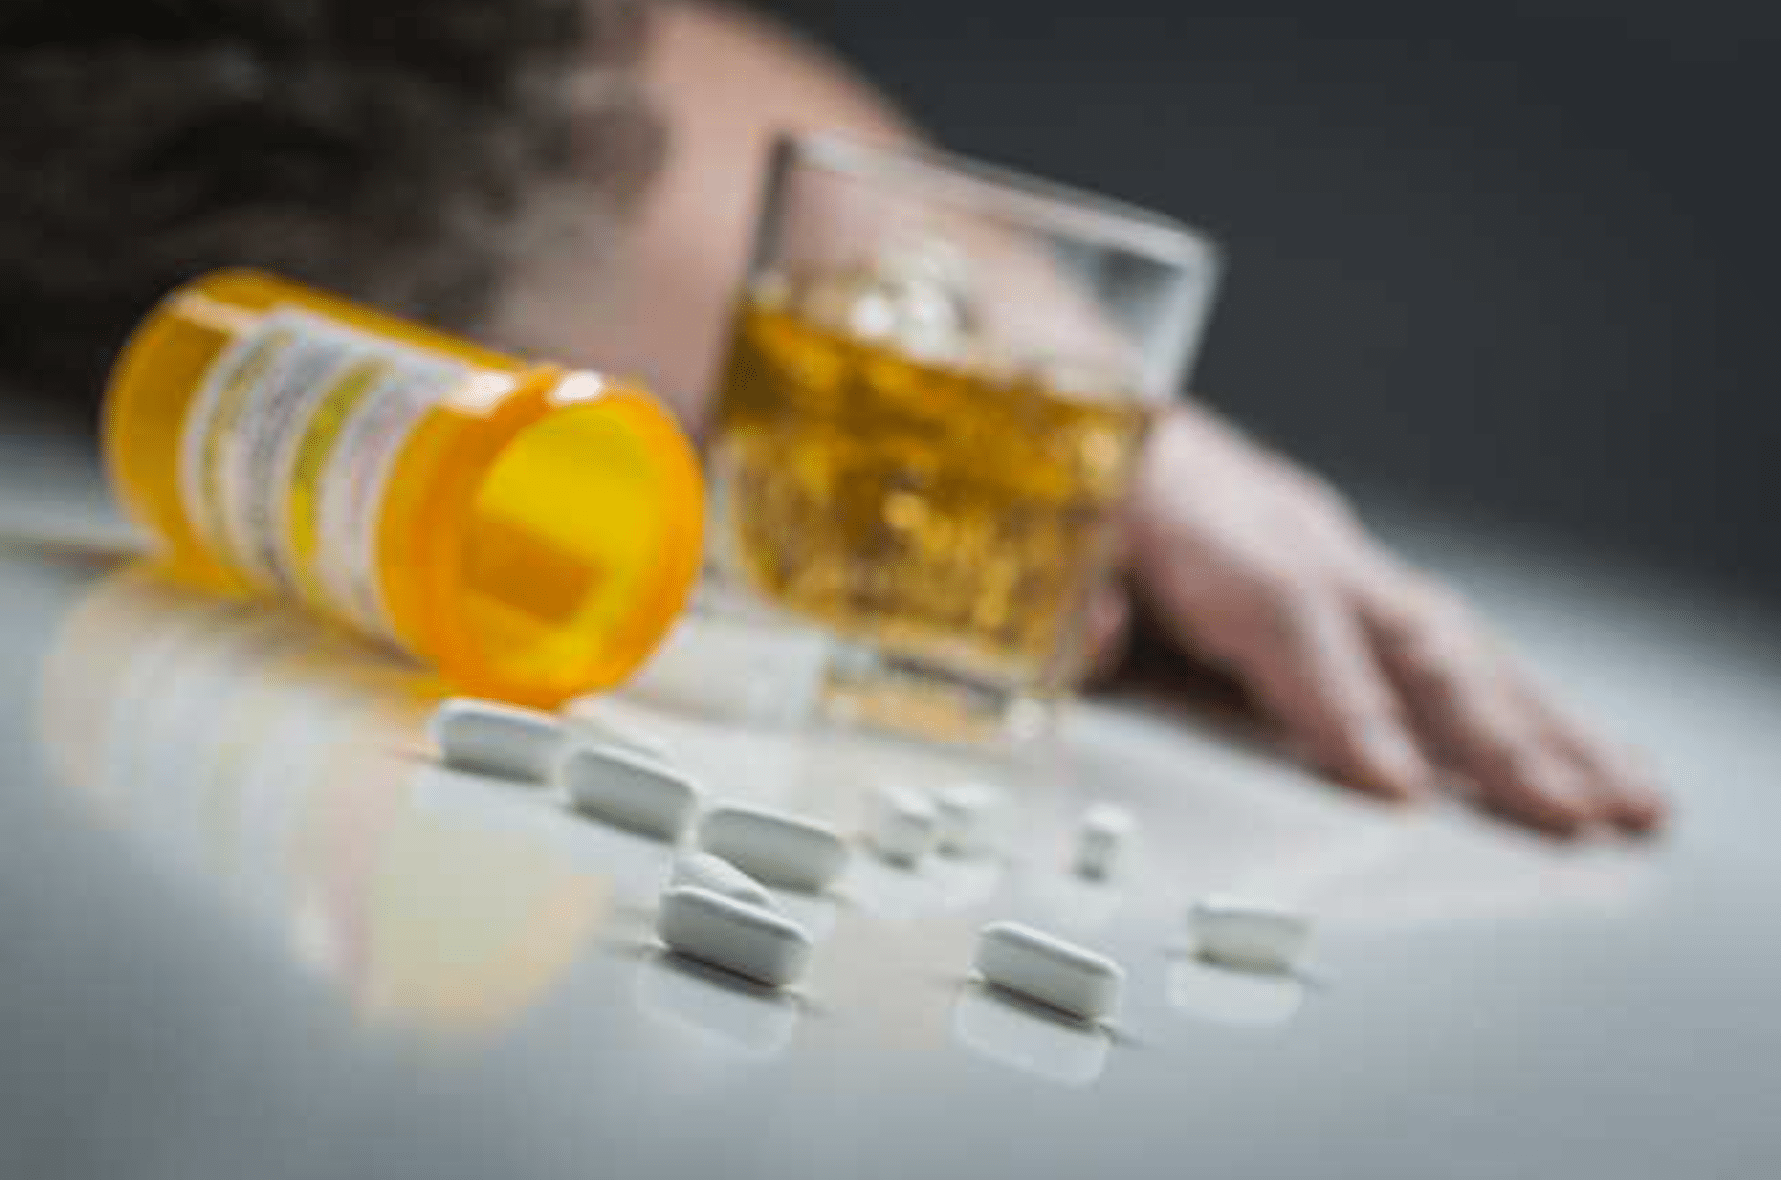 5 Reasons the Substance Abuse Rate is High Among College Students